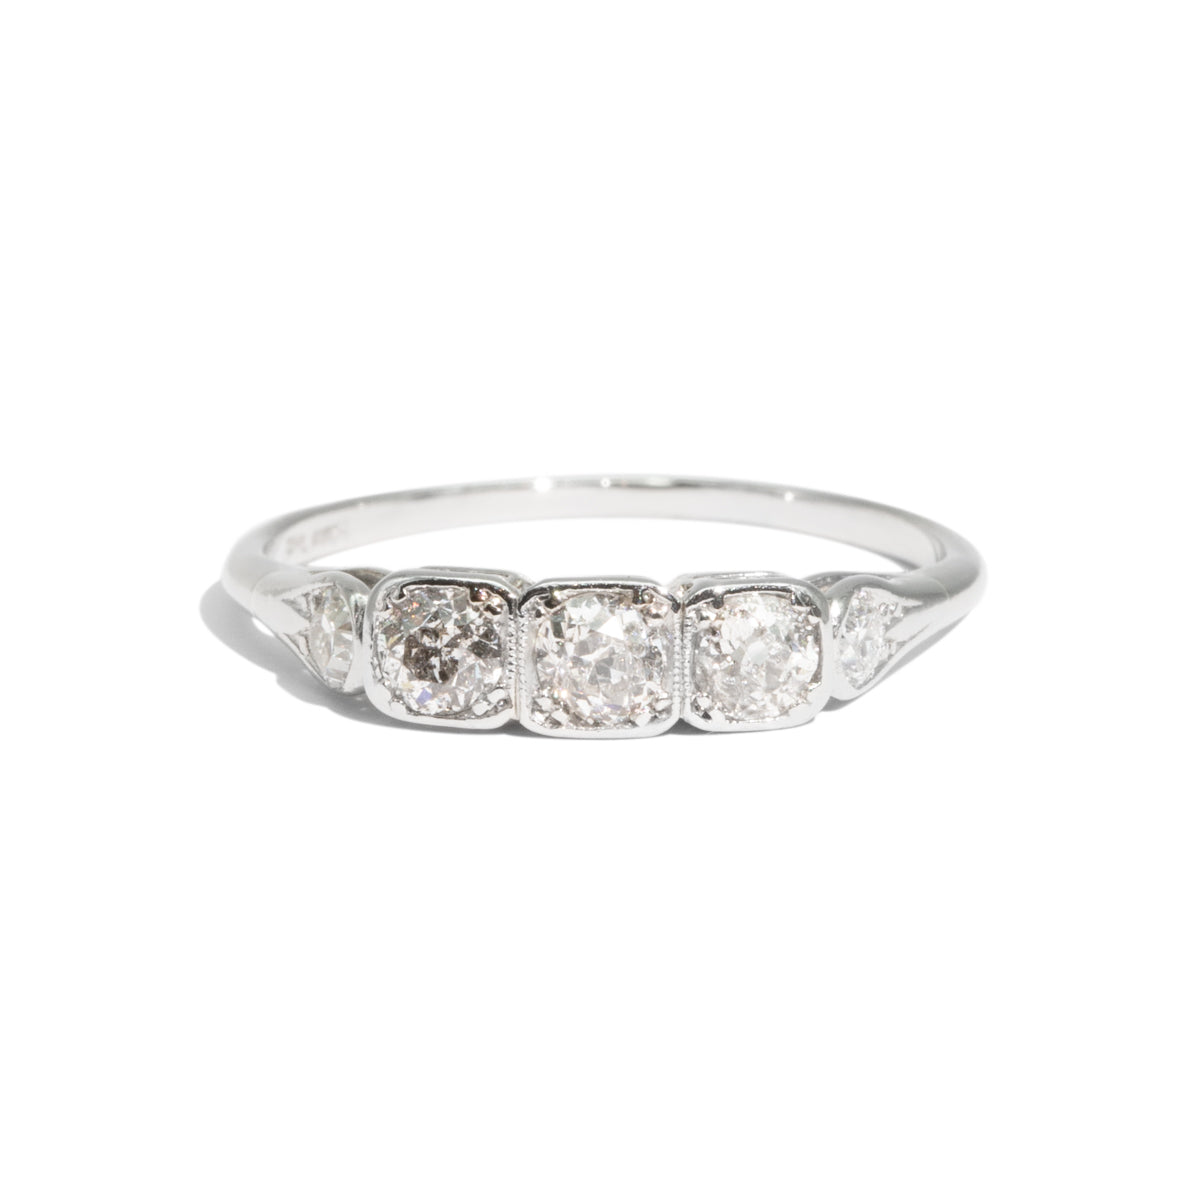 The Juliette Vintage Diamond Ring